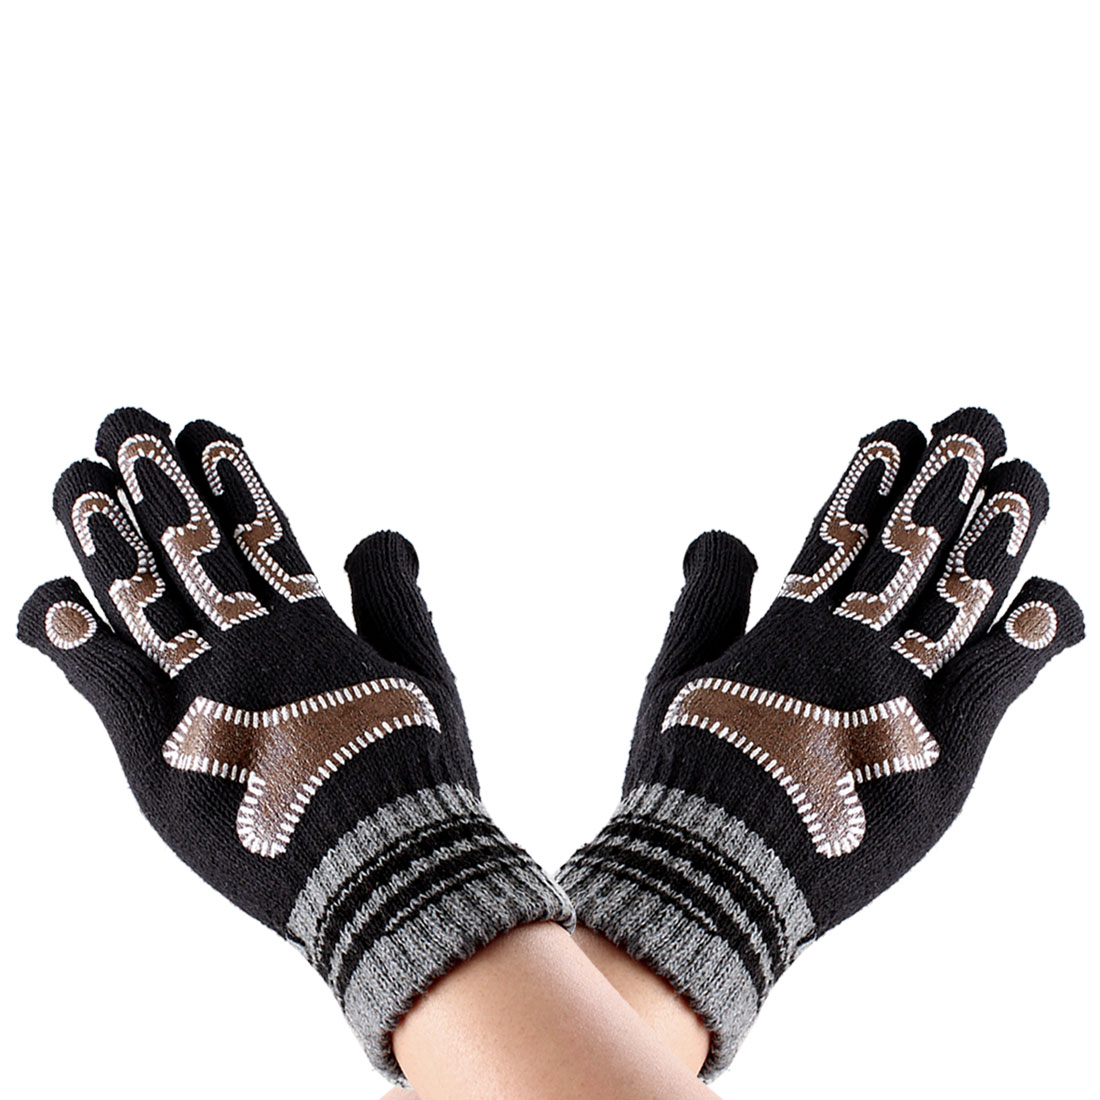 Men Women Pair Arabic Number 5 Pattern Full Fingers Winter Warm Gloves Black